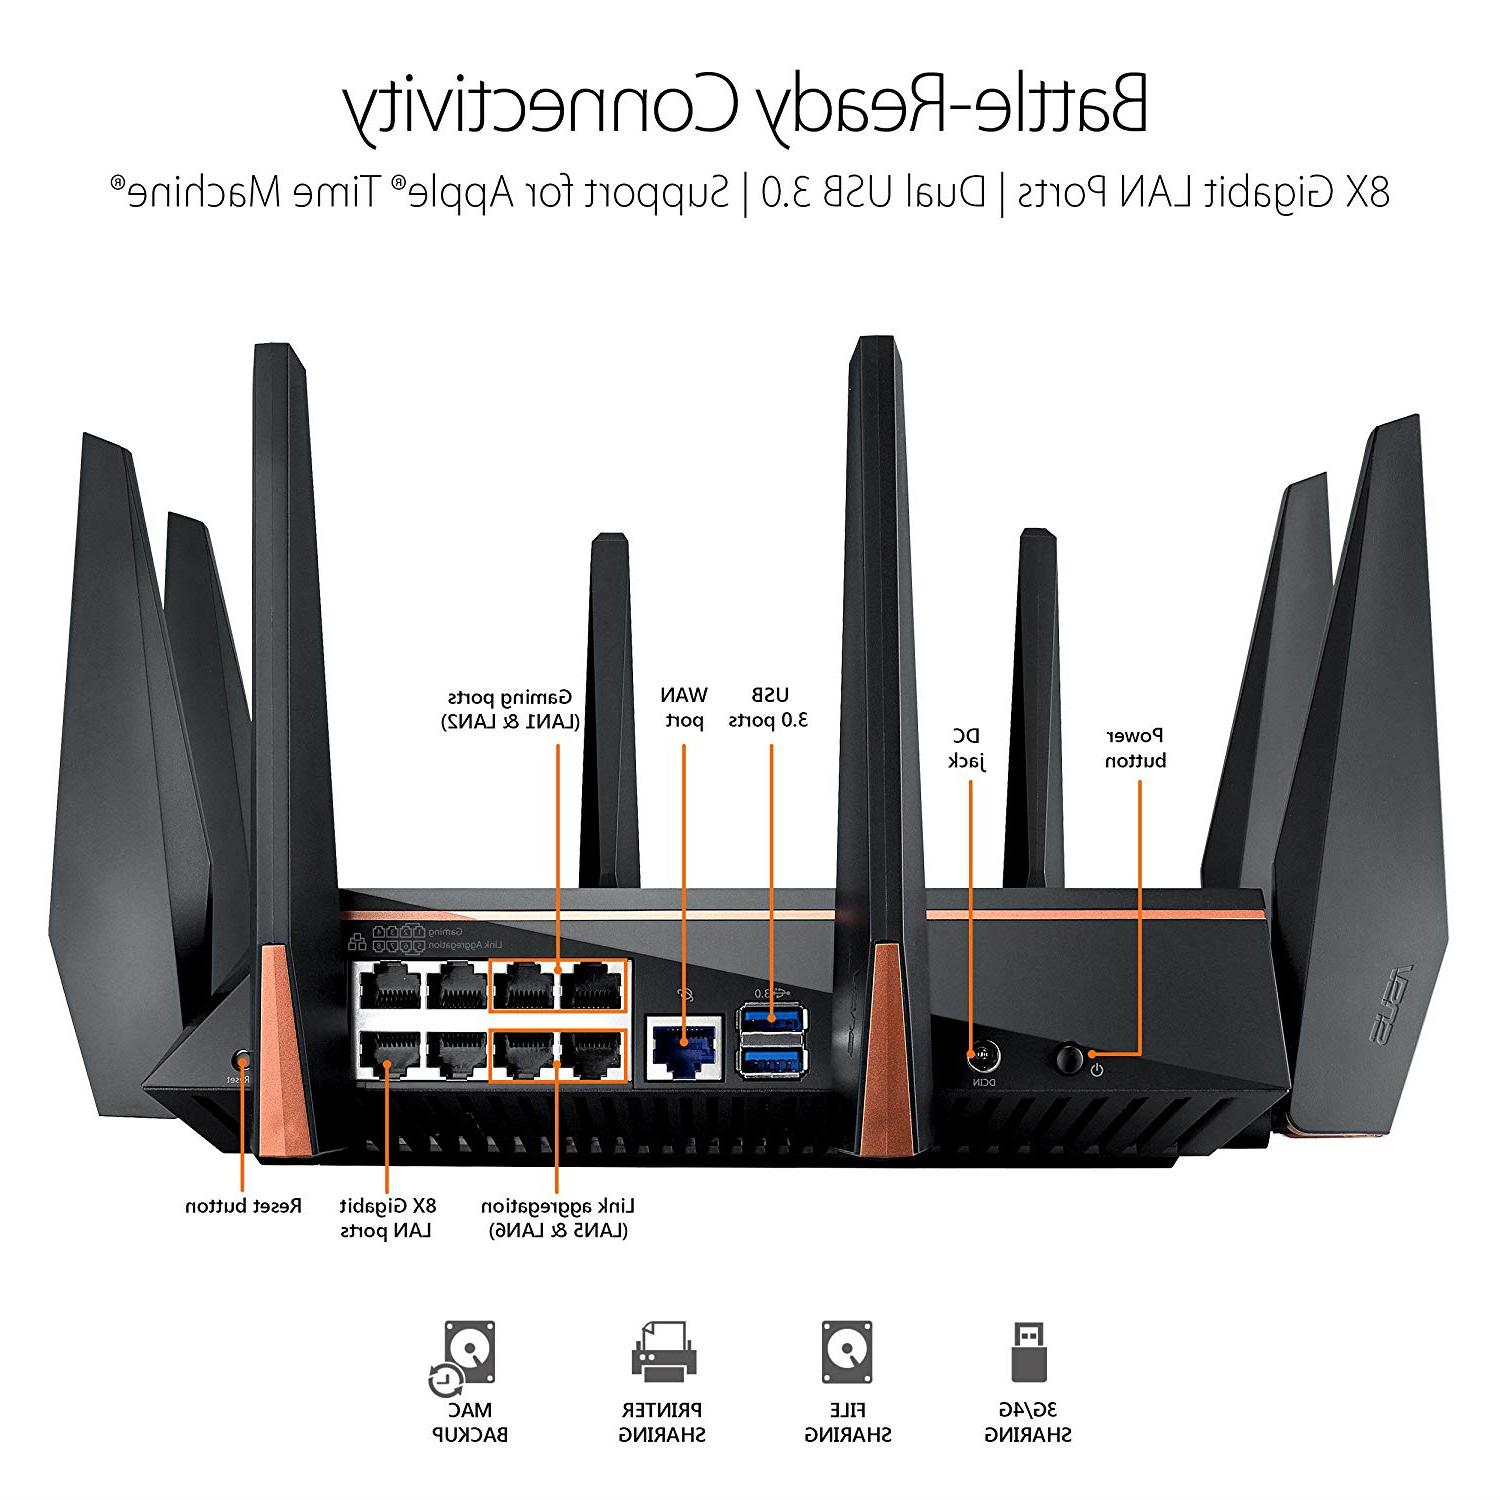 ASUS WiFi Mbps for 4K streaming, 1.8GHz &